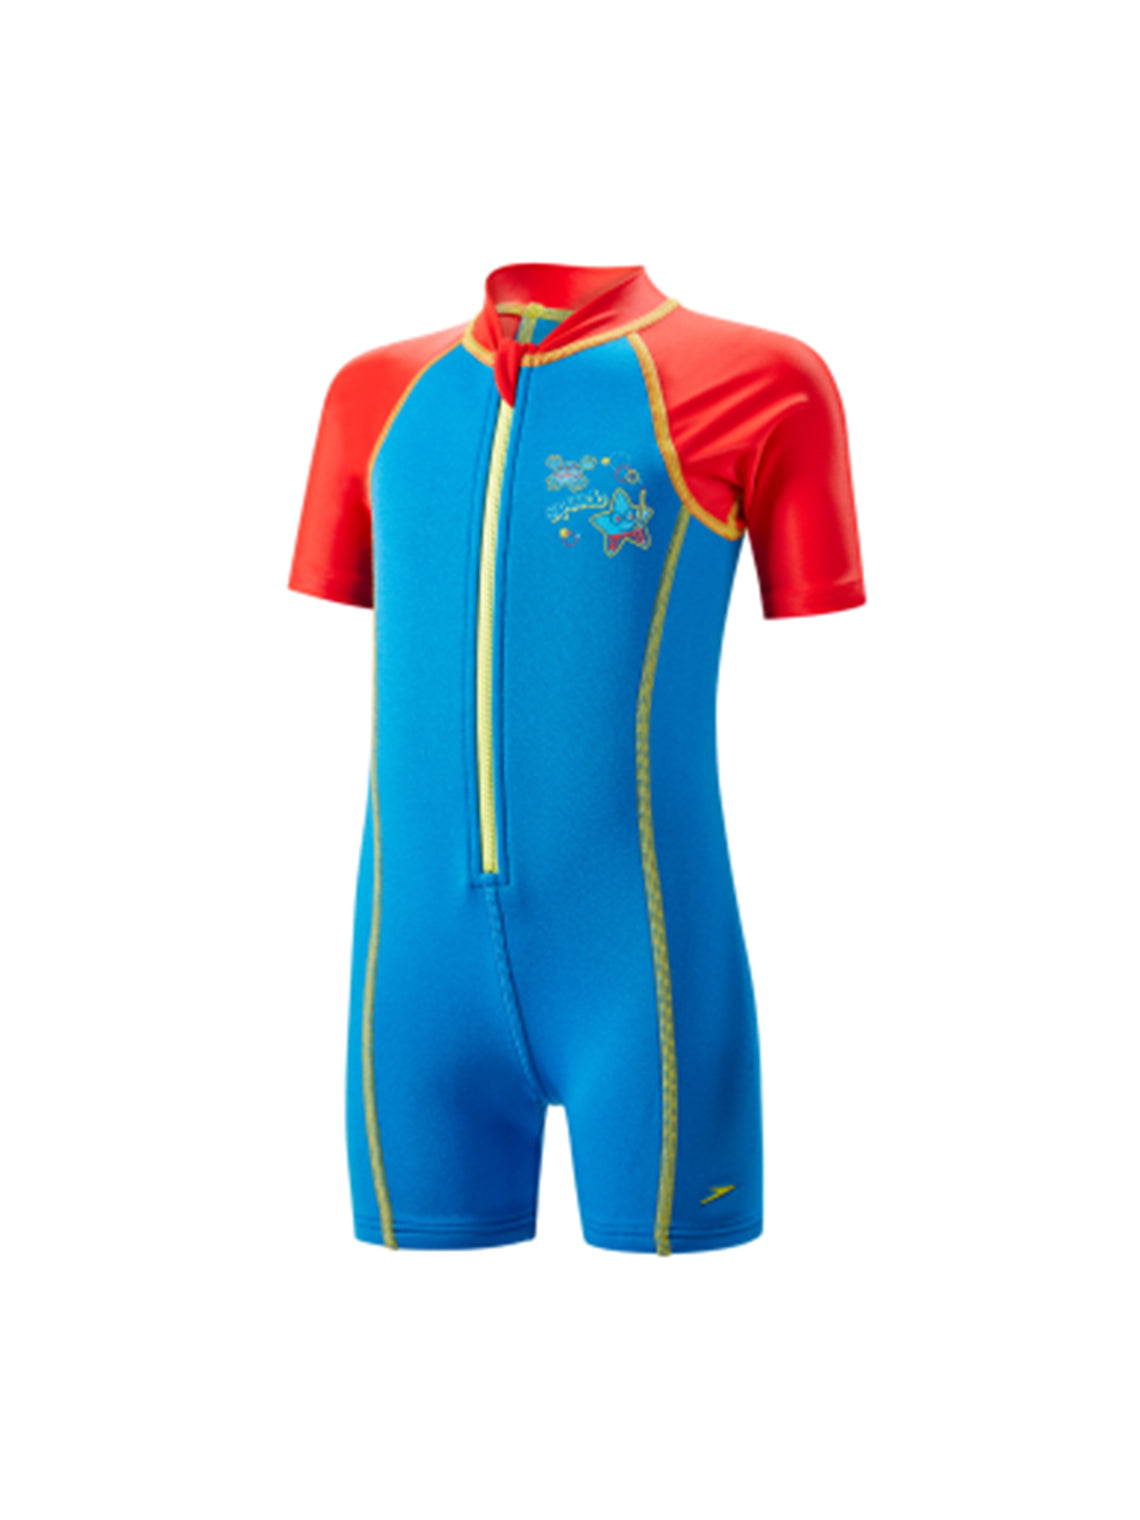 ad90c21ce9 Buy Clothing Sportswear in Singapore , Pants & Leggings, Shorts, Socks,  Support, Swimwear, T-shirts & Tops - Royal Sporting House